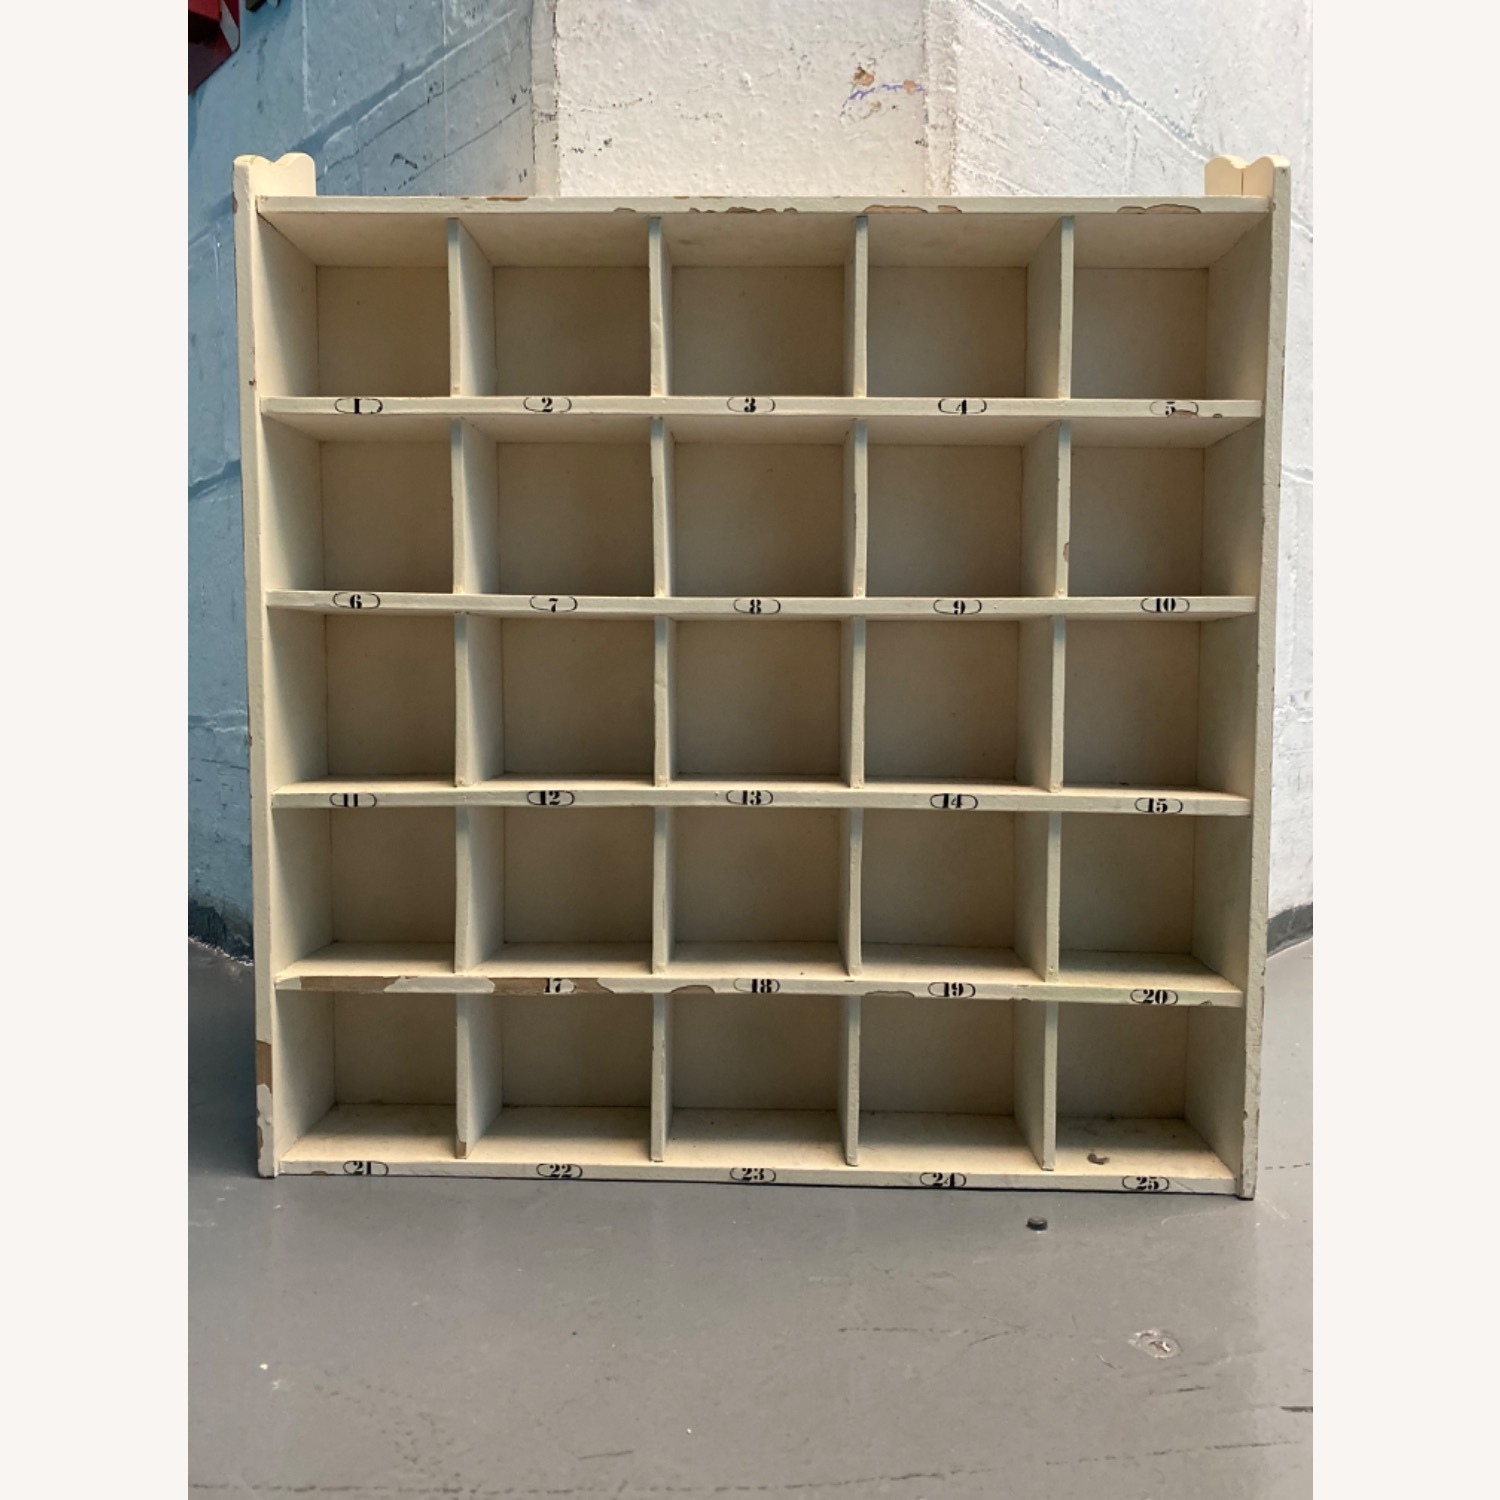 Pottery Barn Cubby Storage - image-19